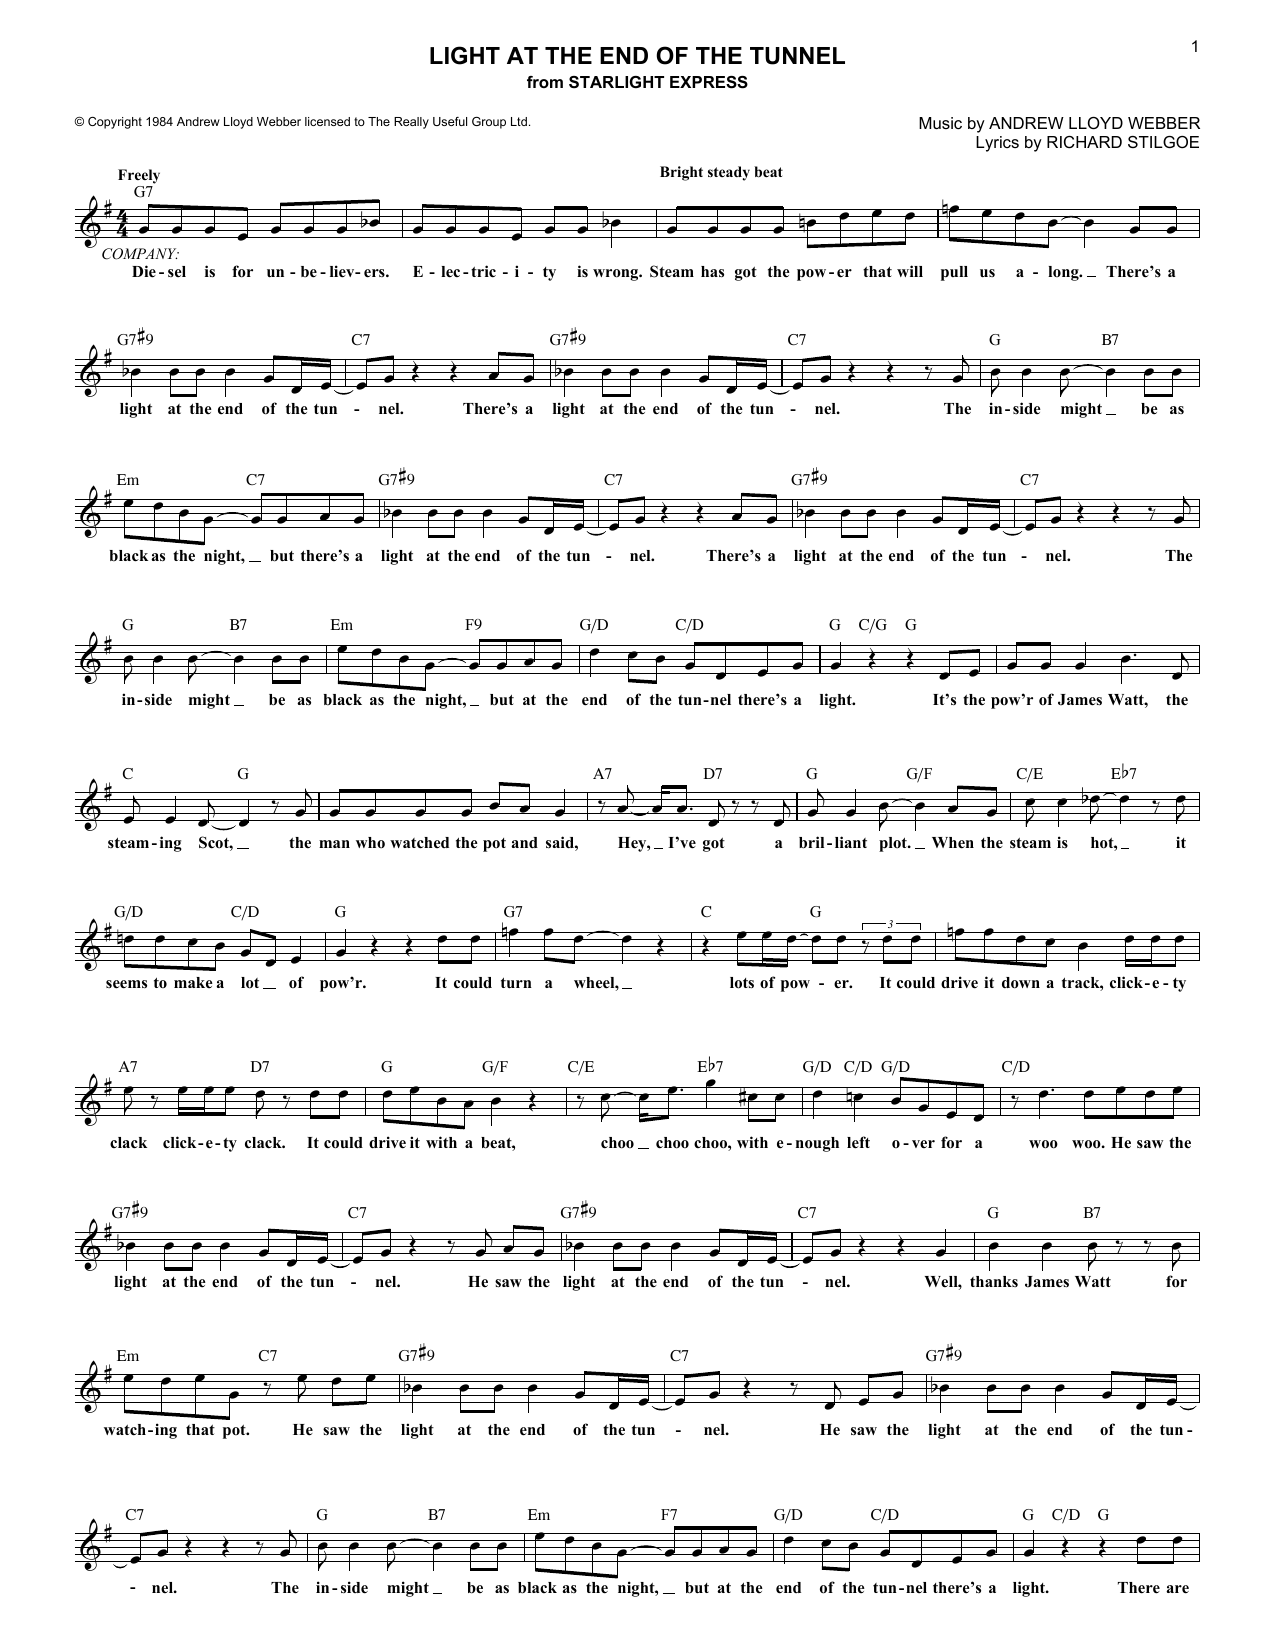 Andrew Lloyd Webber Light At The End Of The Tunnel (from Starlight Express) sheet music notes printable PDF score